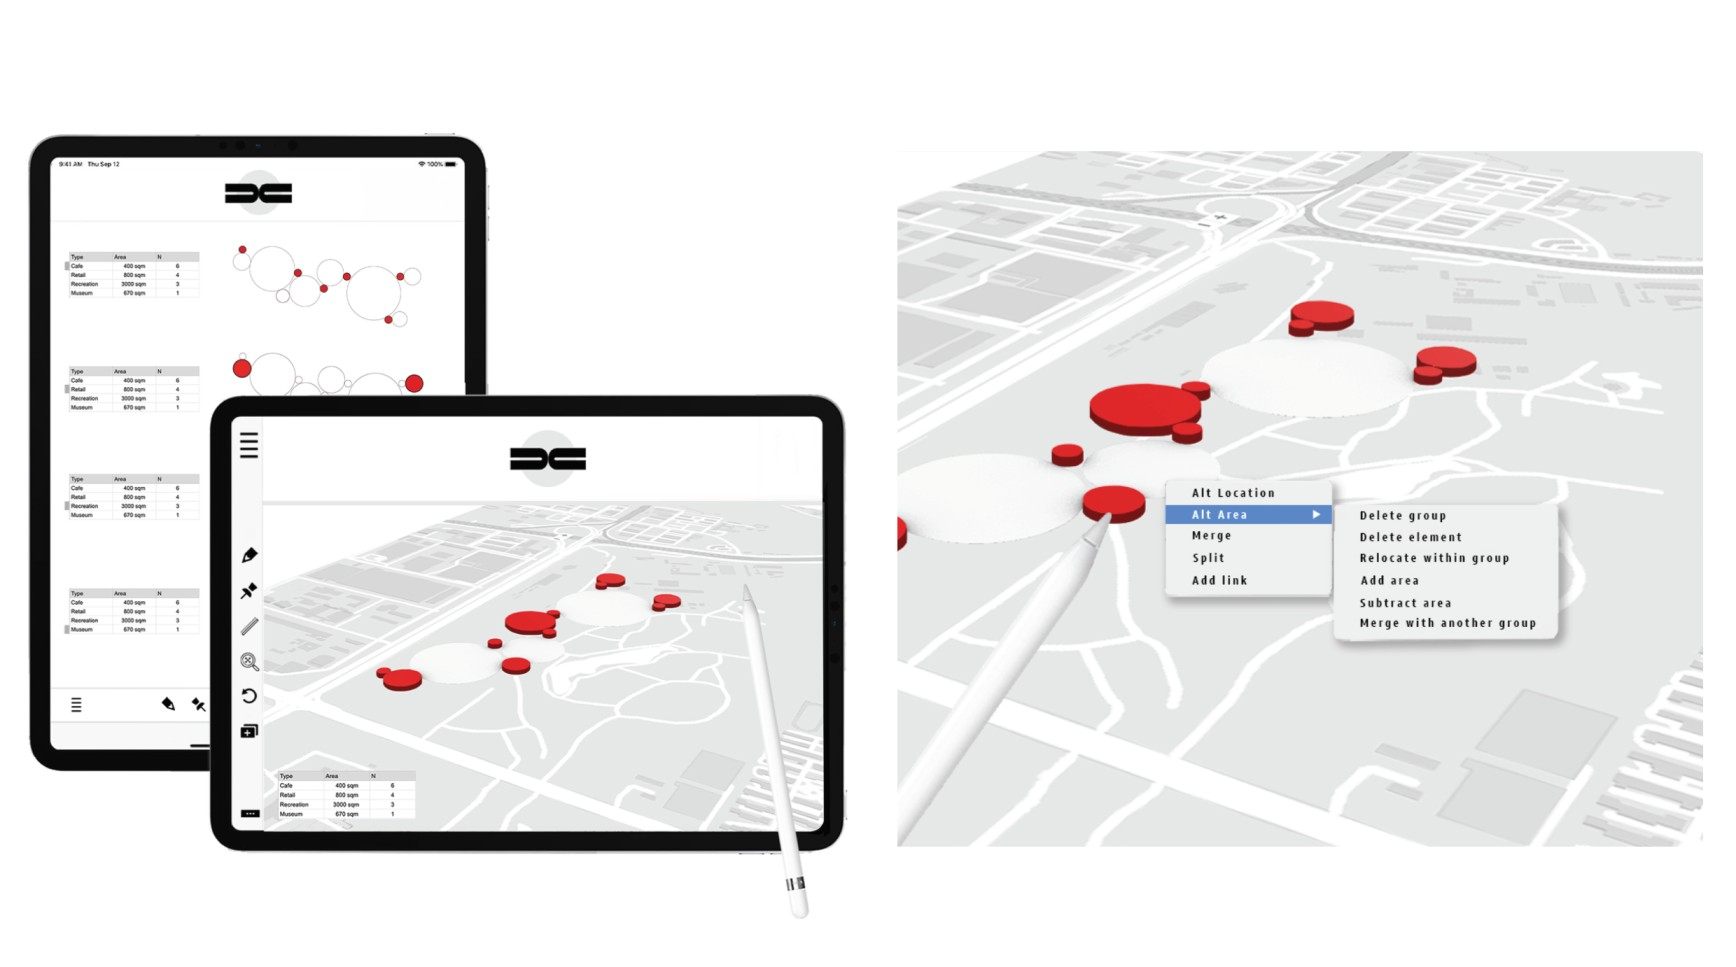 Uflow Juxtaposition and volumes - pinning visual data to the map